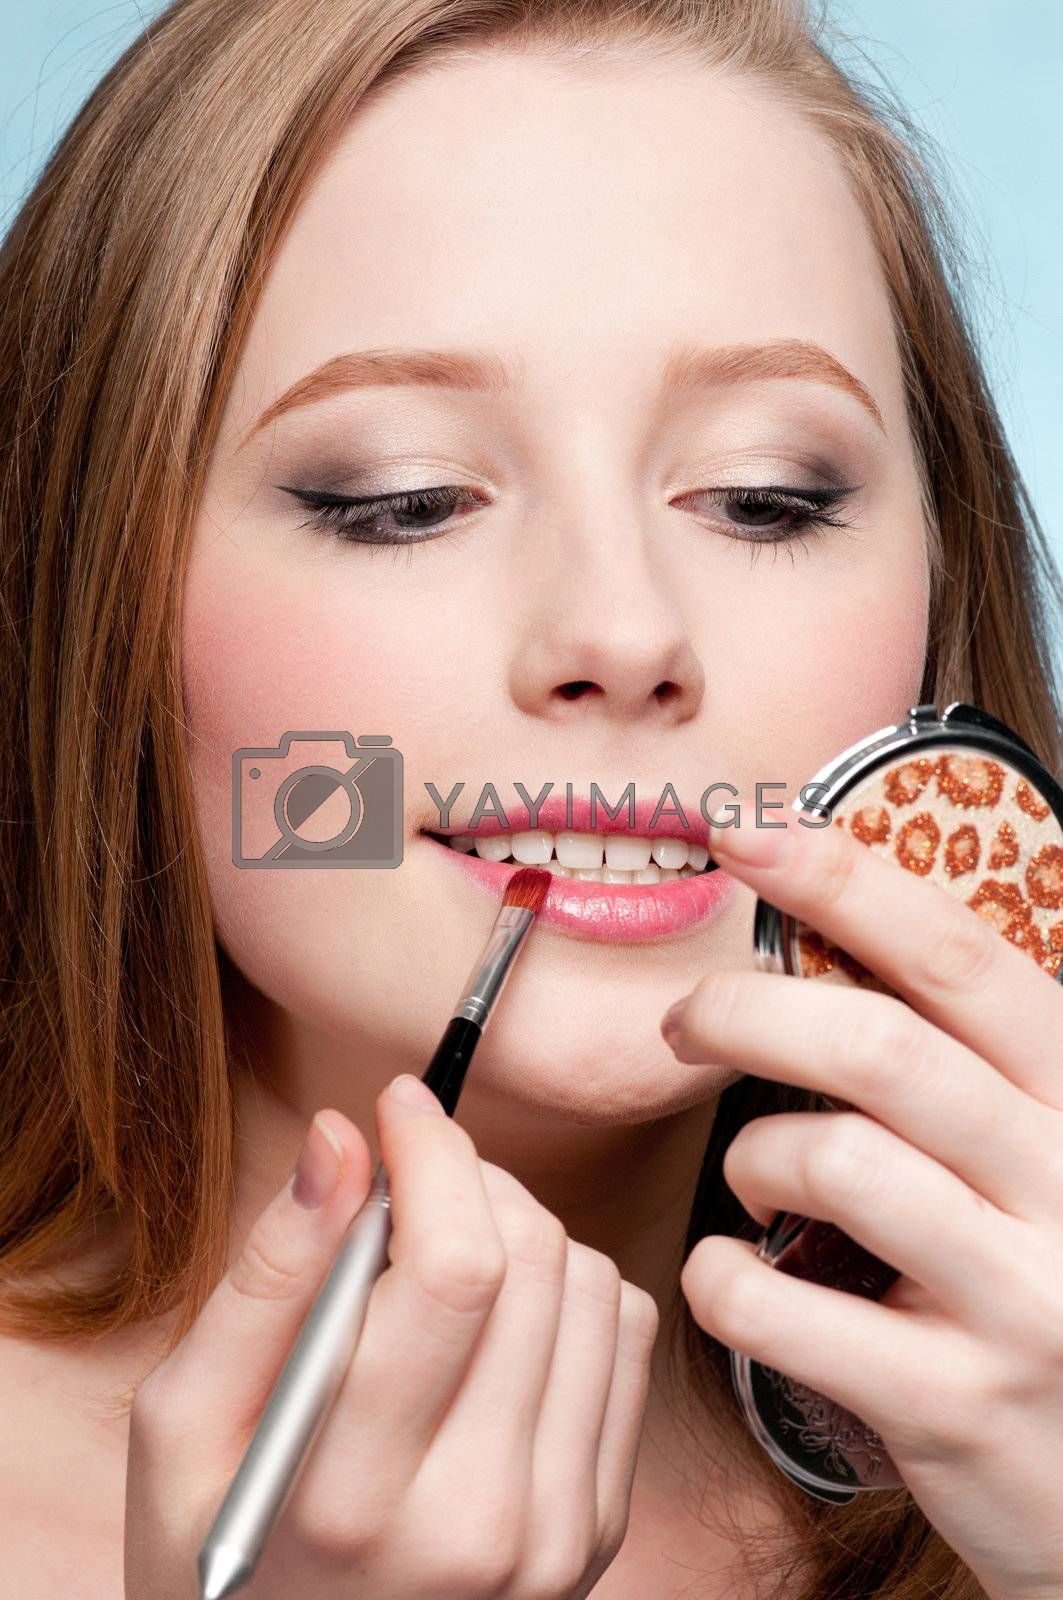 Beautiful young adult woman applying cosmetic lipstick brush - close-up portrait